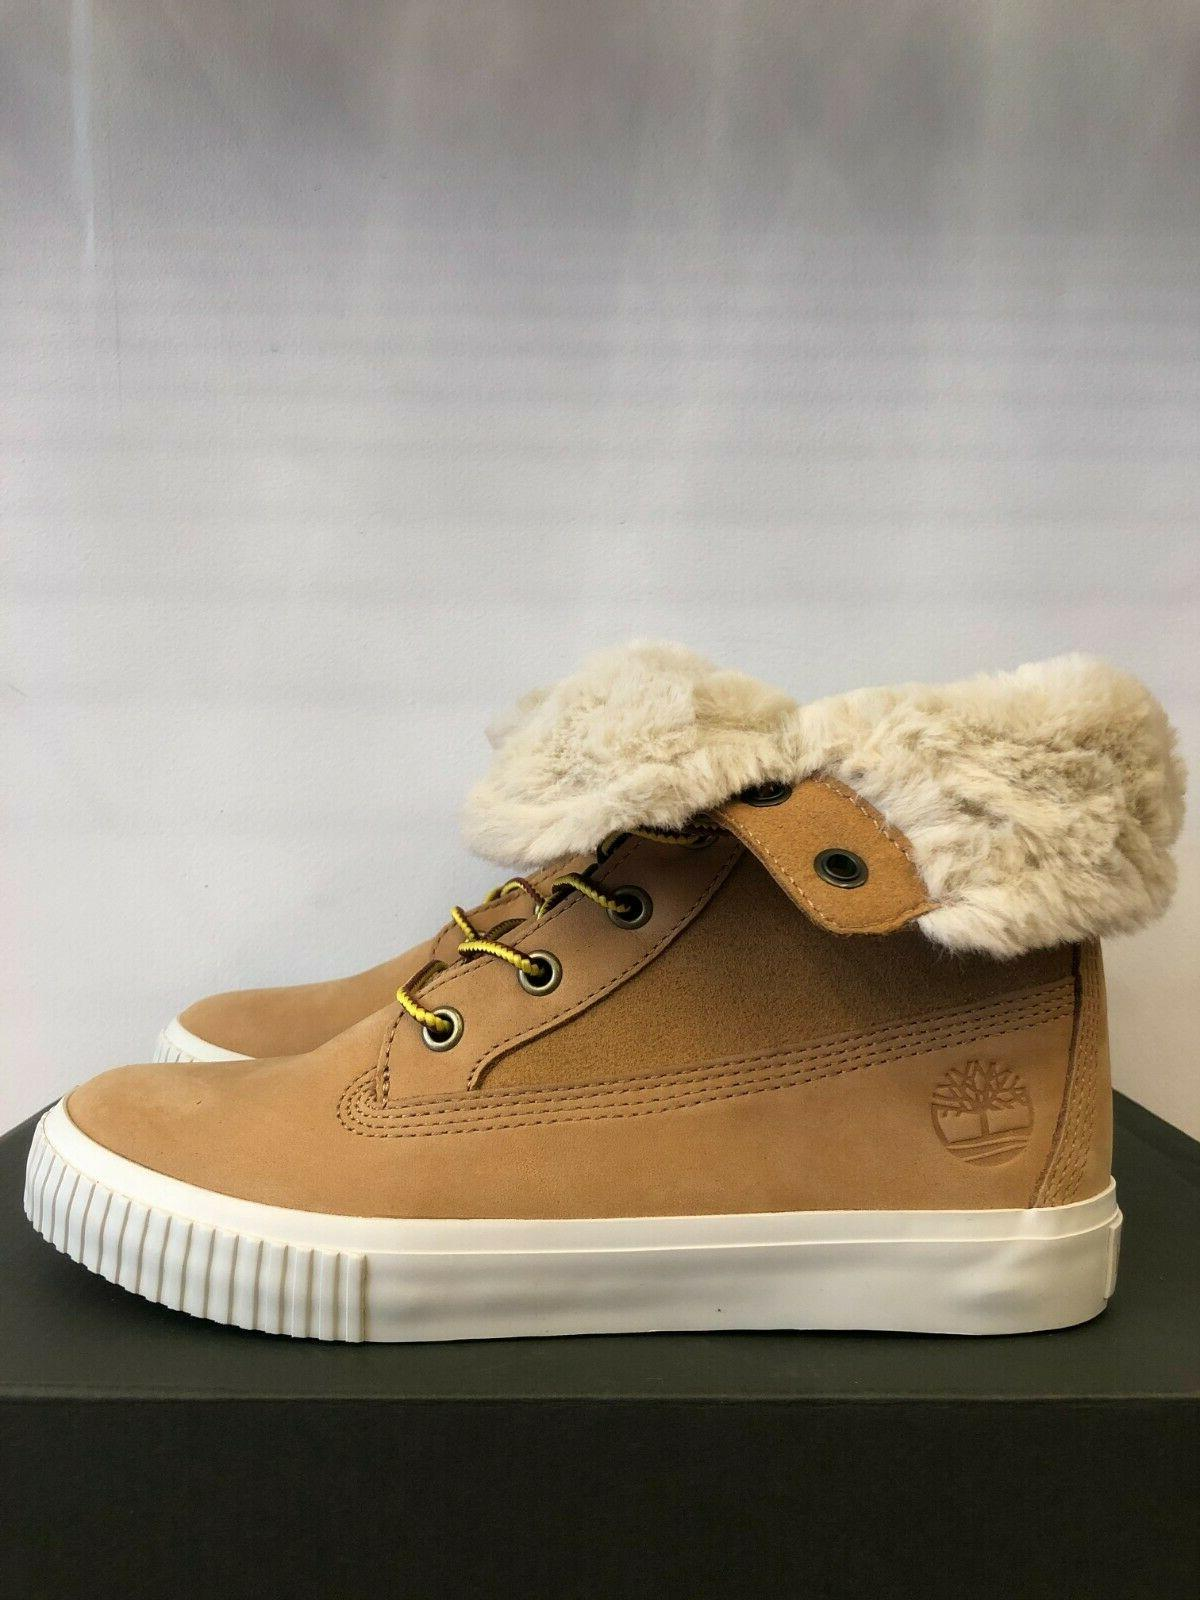 NEW TIMBERLAND WINTER BOOTS SHOES WOMEN